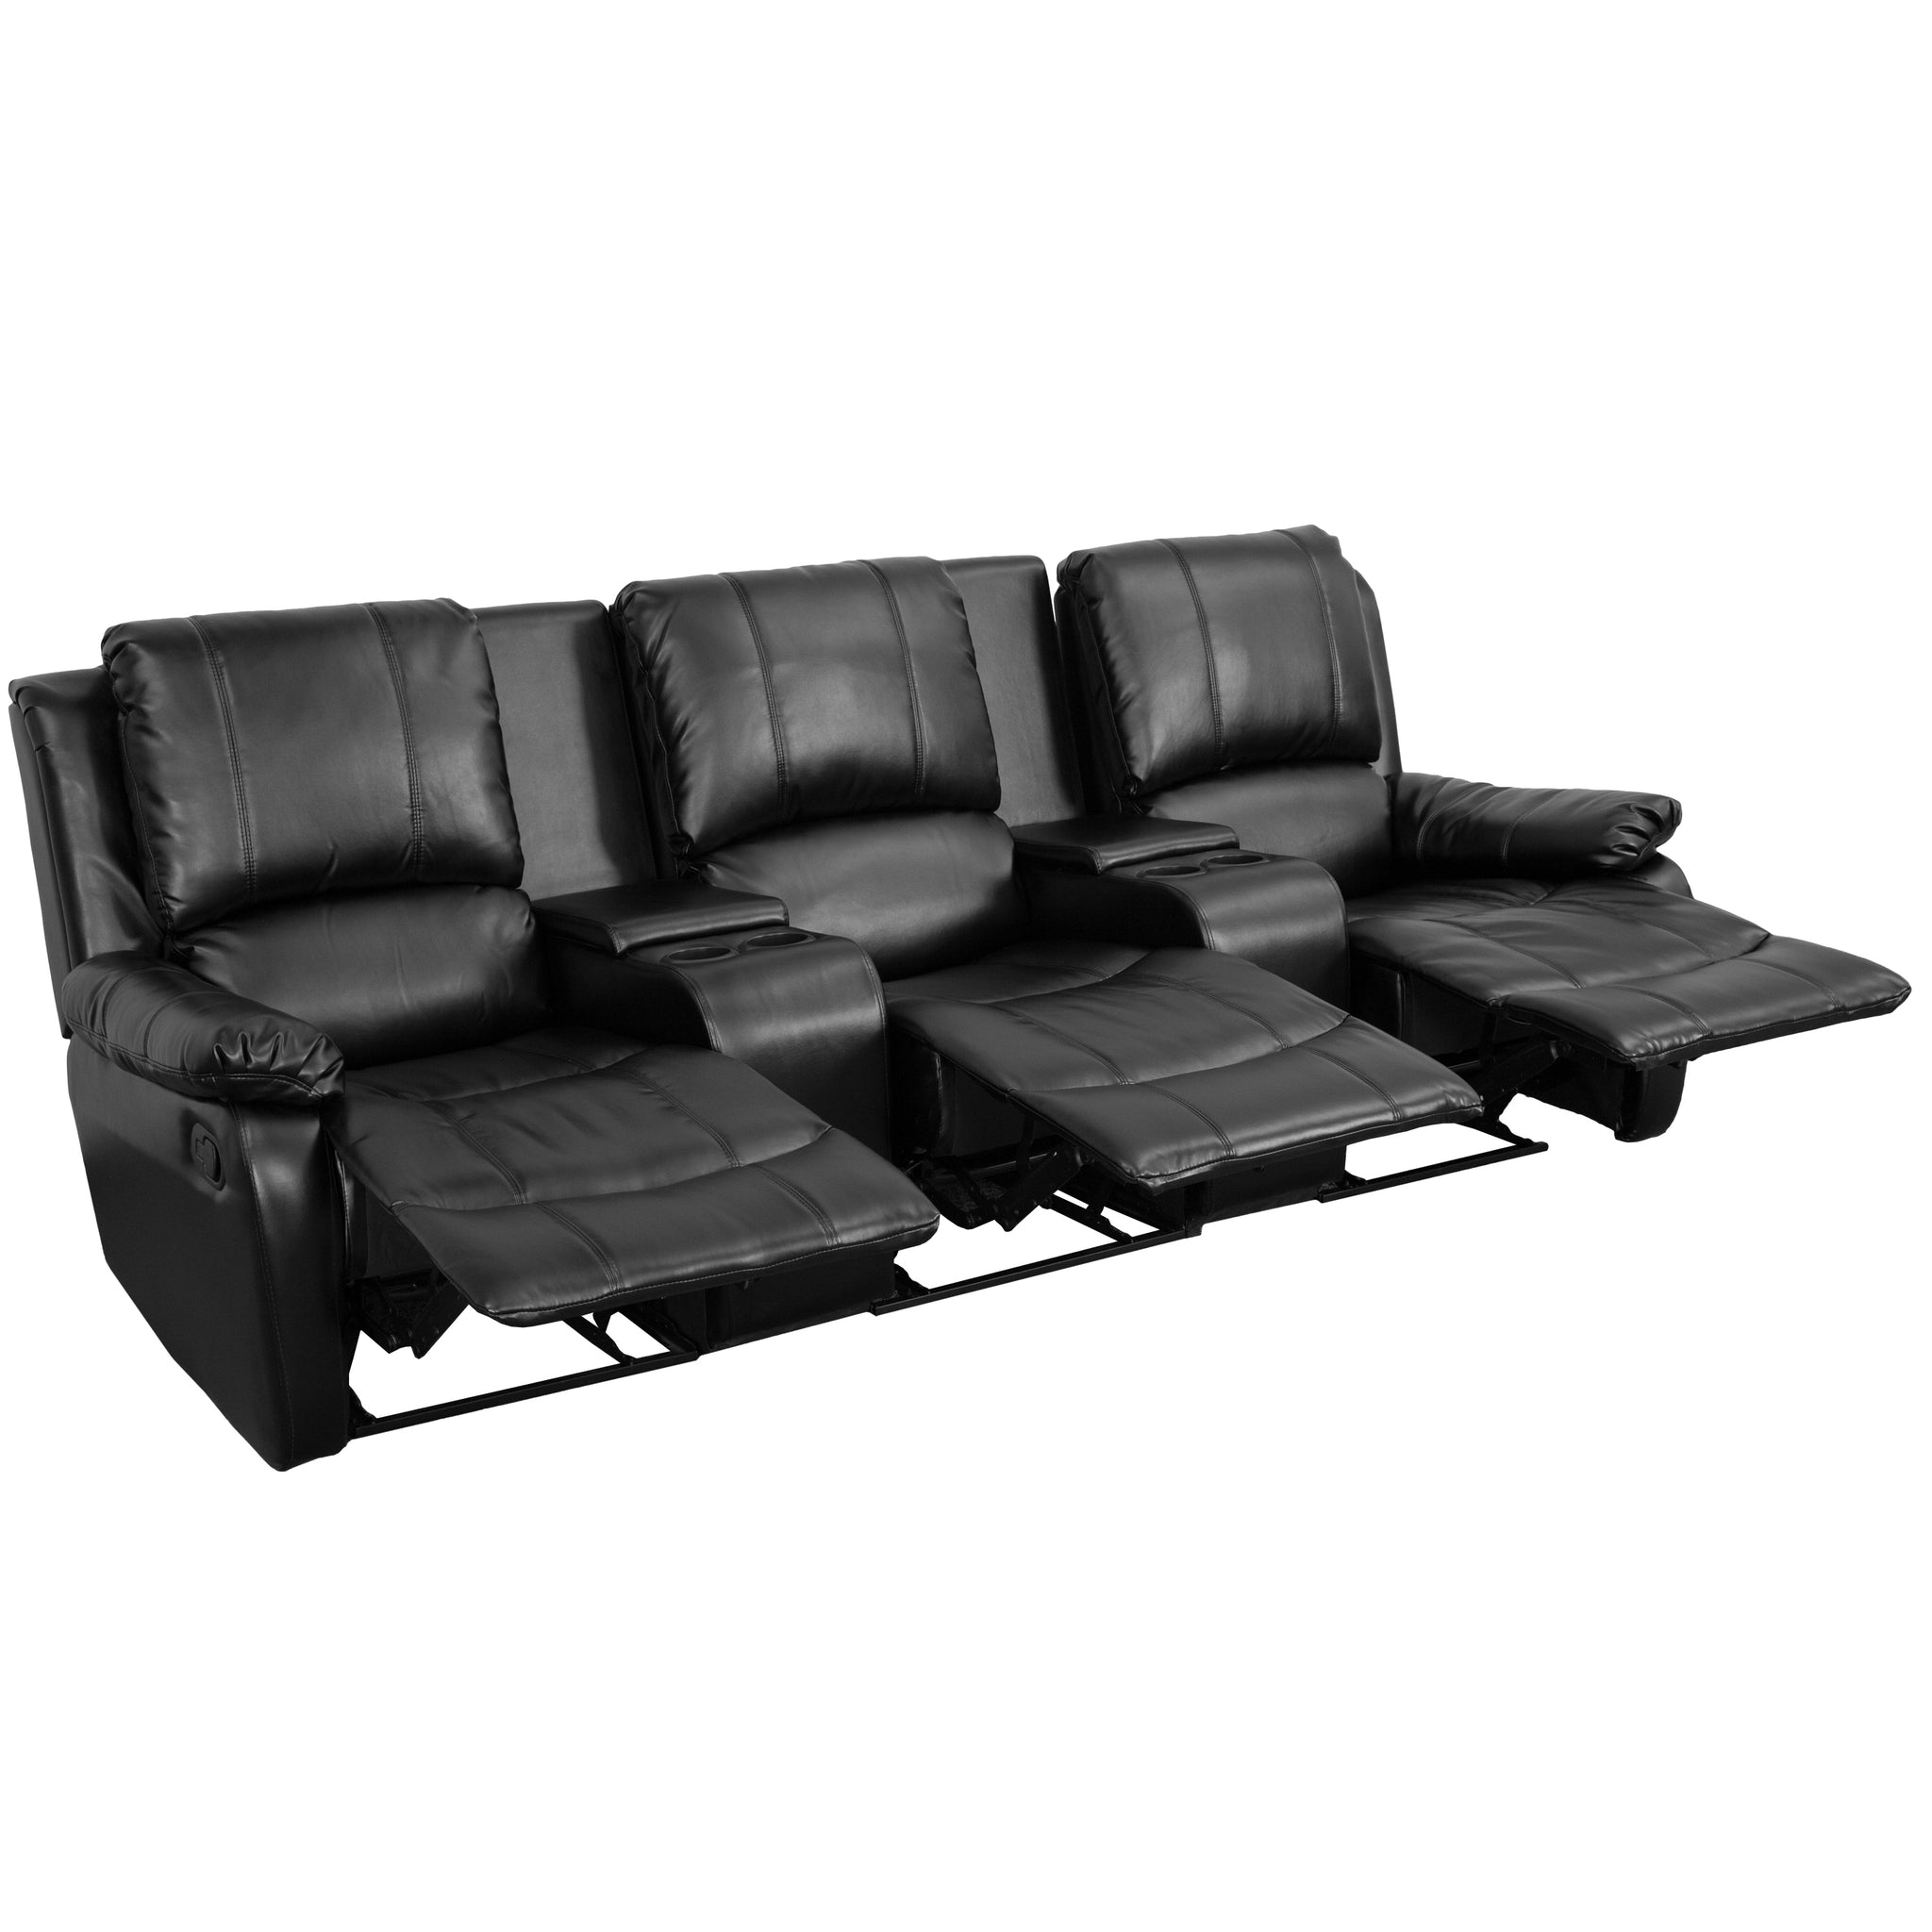 Allure Series 3-Seat Reclining Pillow Back Leather Theater Seating Unit with Cup Holders: Black